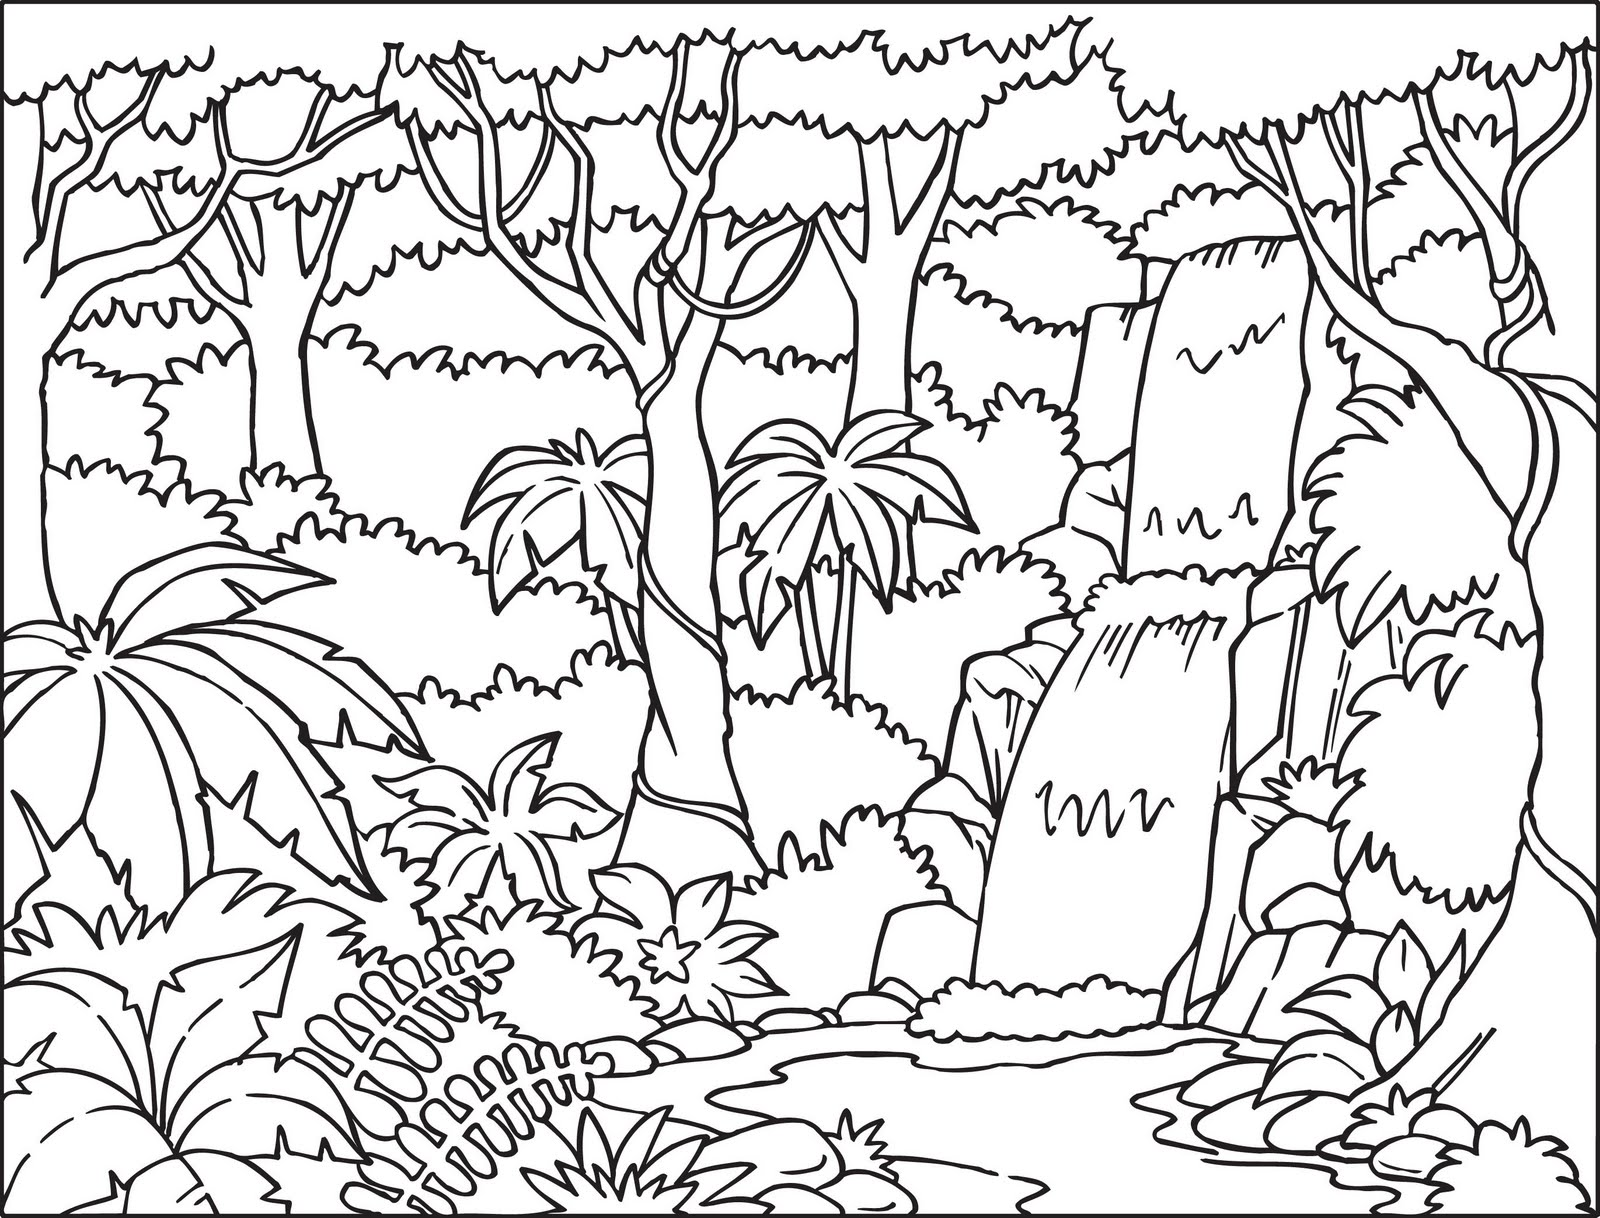 Drawn rain black and white Kids RAINFOREST colouring Coloringpages321 COLORING